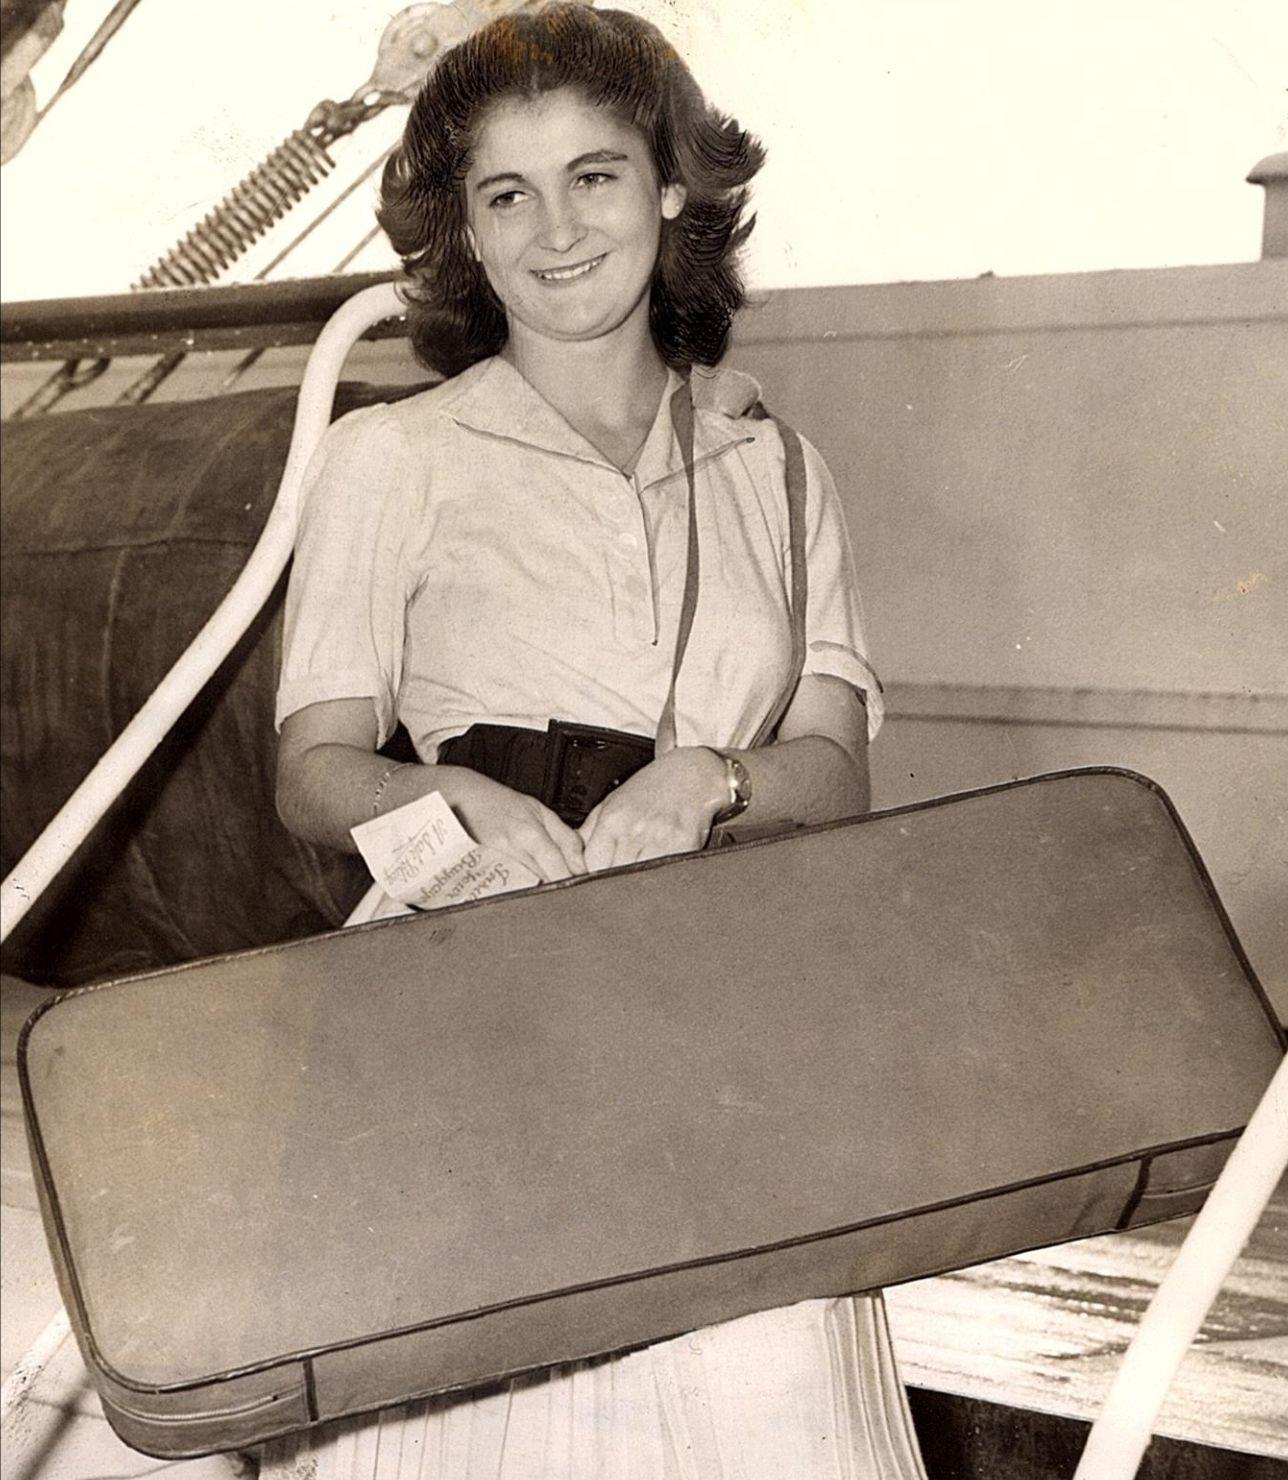 Kato Havas in 1939, on the Aquitania transatlantic ship, arriving in New York for her début in Carnegie Hall and USA concert tour